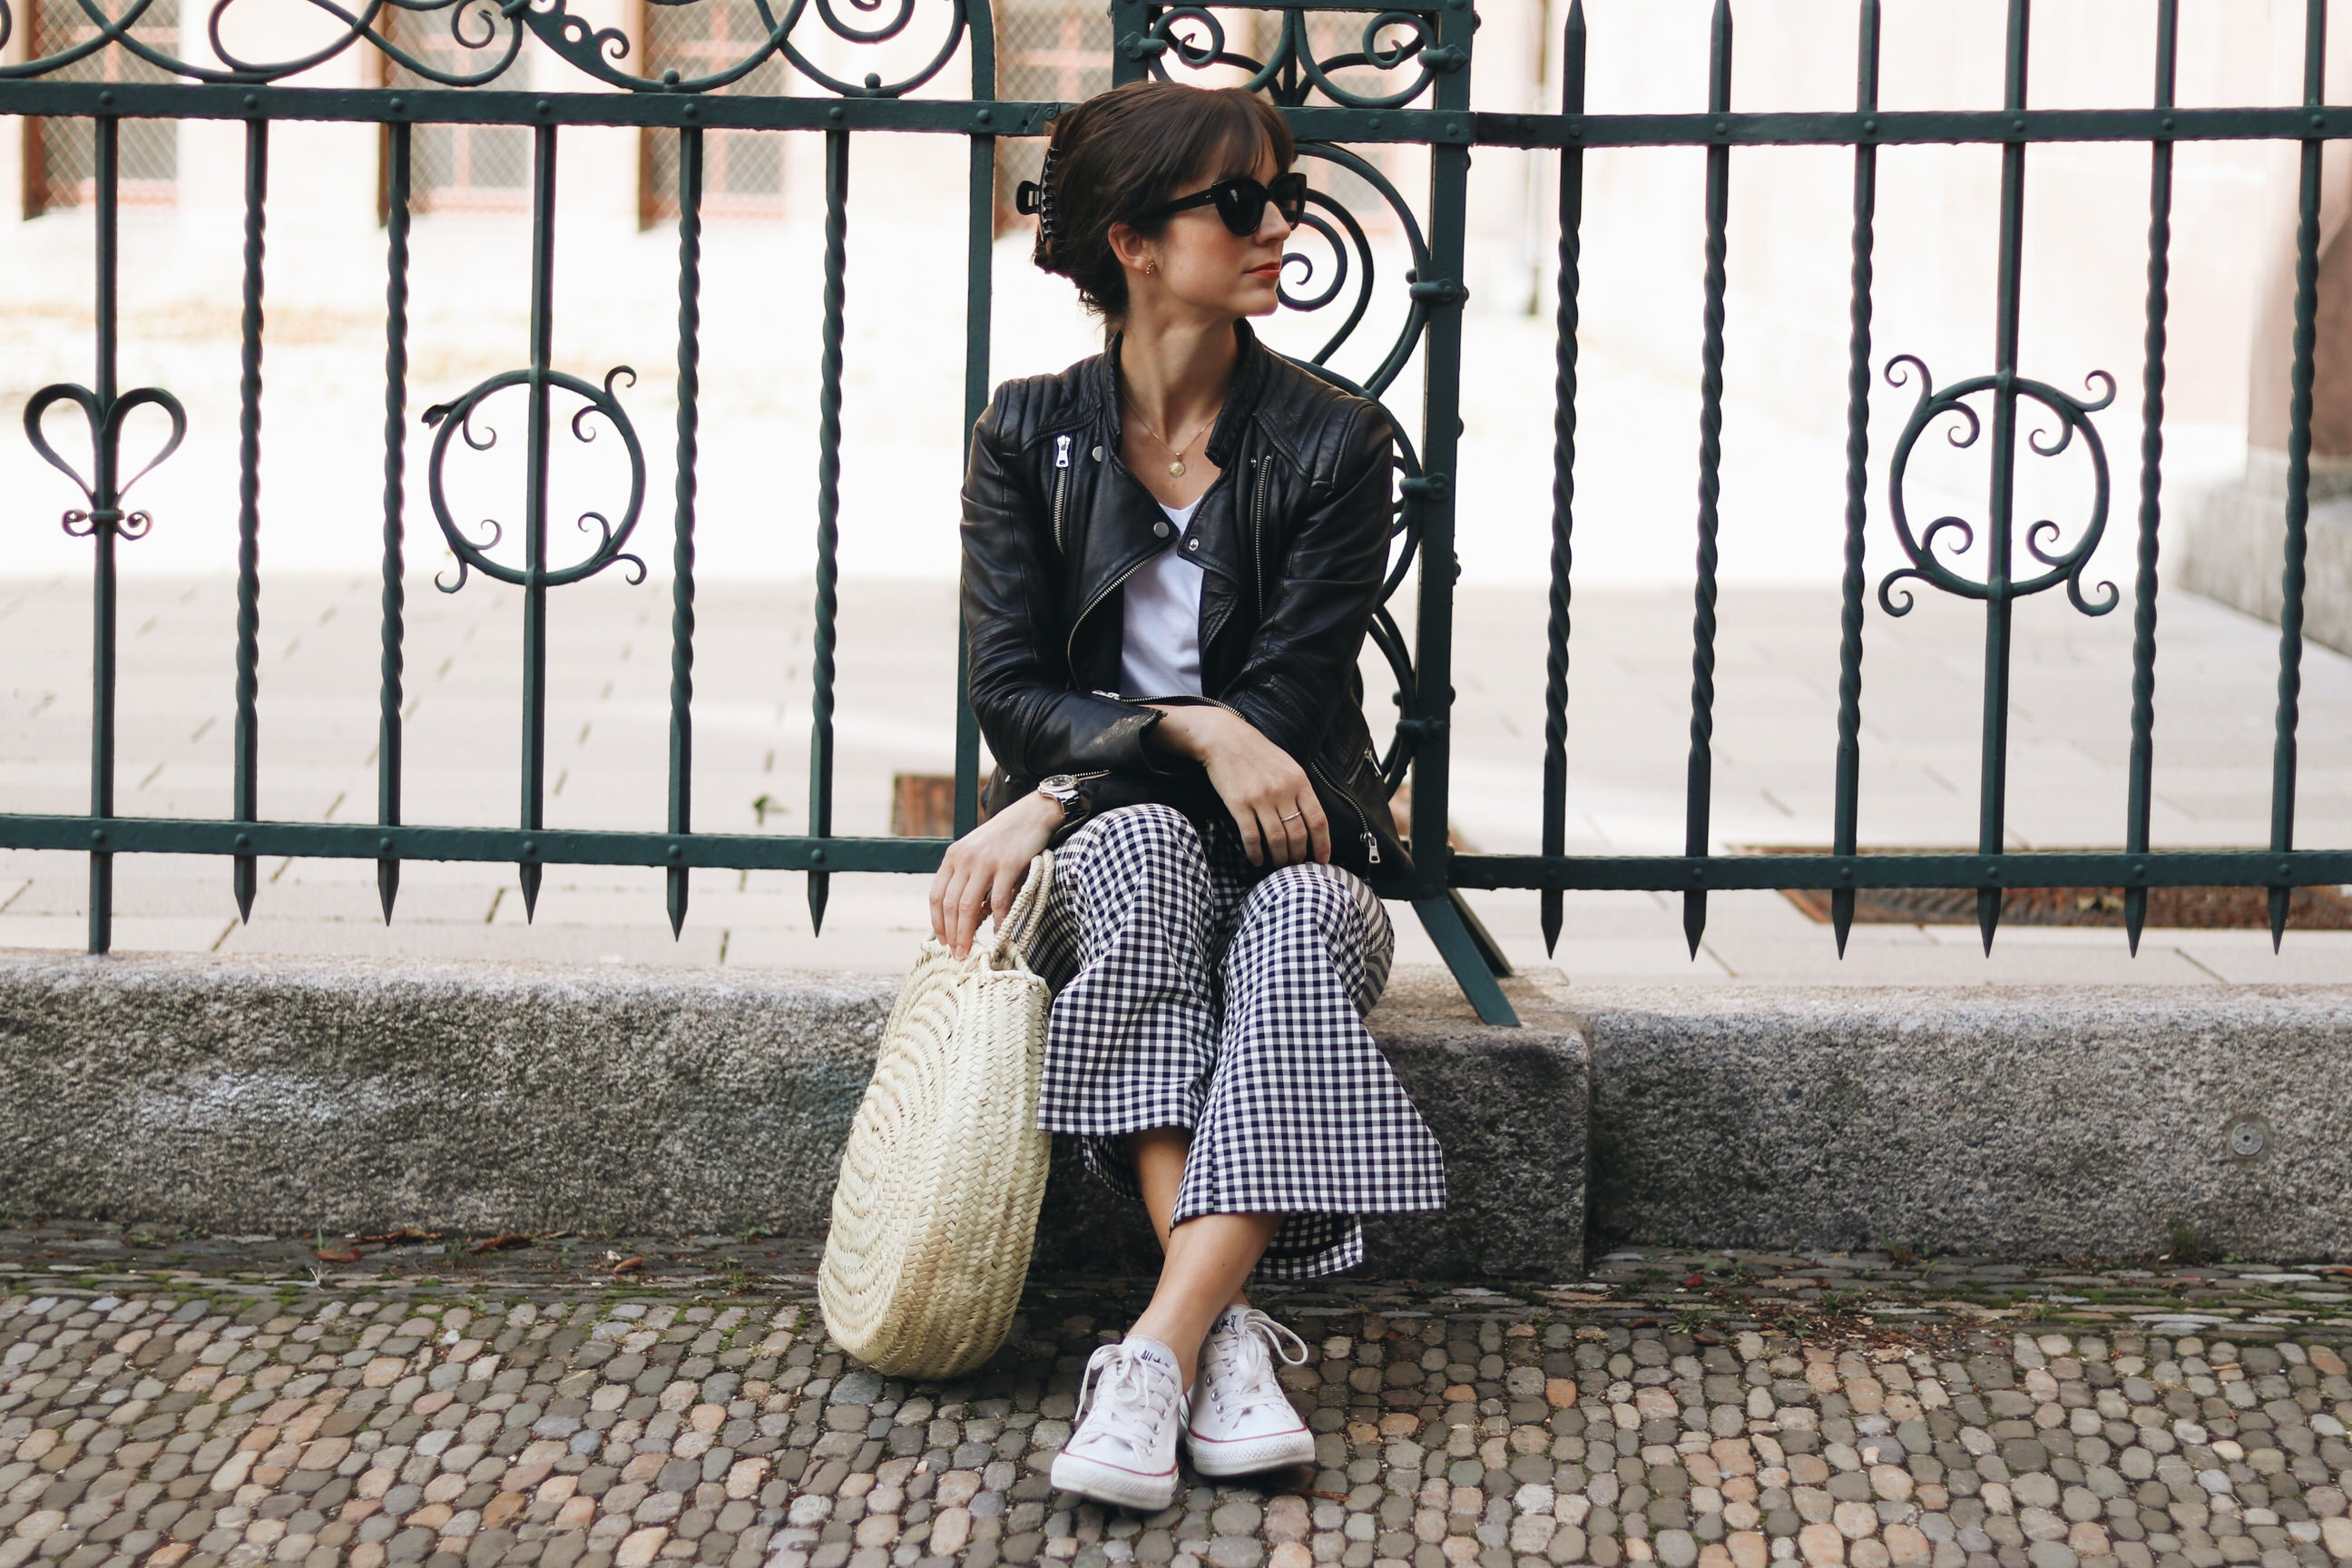 Vichykaro-Gingham-Korbtasche-Birkinbasekt-French-Chic-Kick-Flare-Lederjacke-Ace-and-Tate-Sunnies-Sneaker-Chucks-modeblog-bloggerin-fashionblogVichykaro-Gingham-Korbtasche-Birkinbasekt-French-Chic-Kick-Flare-Lederjacke-Ace-and-Tate-Sunnies-Sneaker-Chucks-modeblog-bloggerin-fashionblog